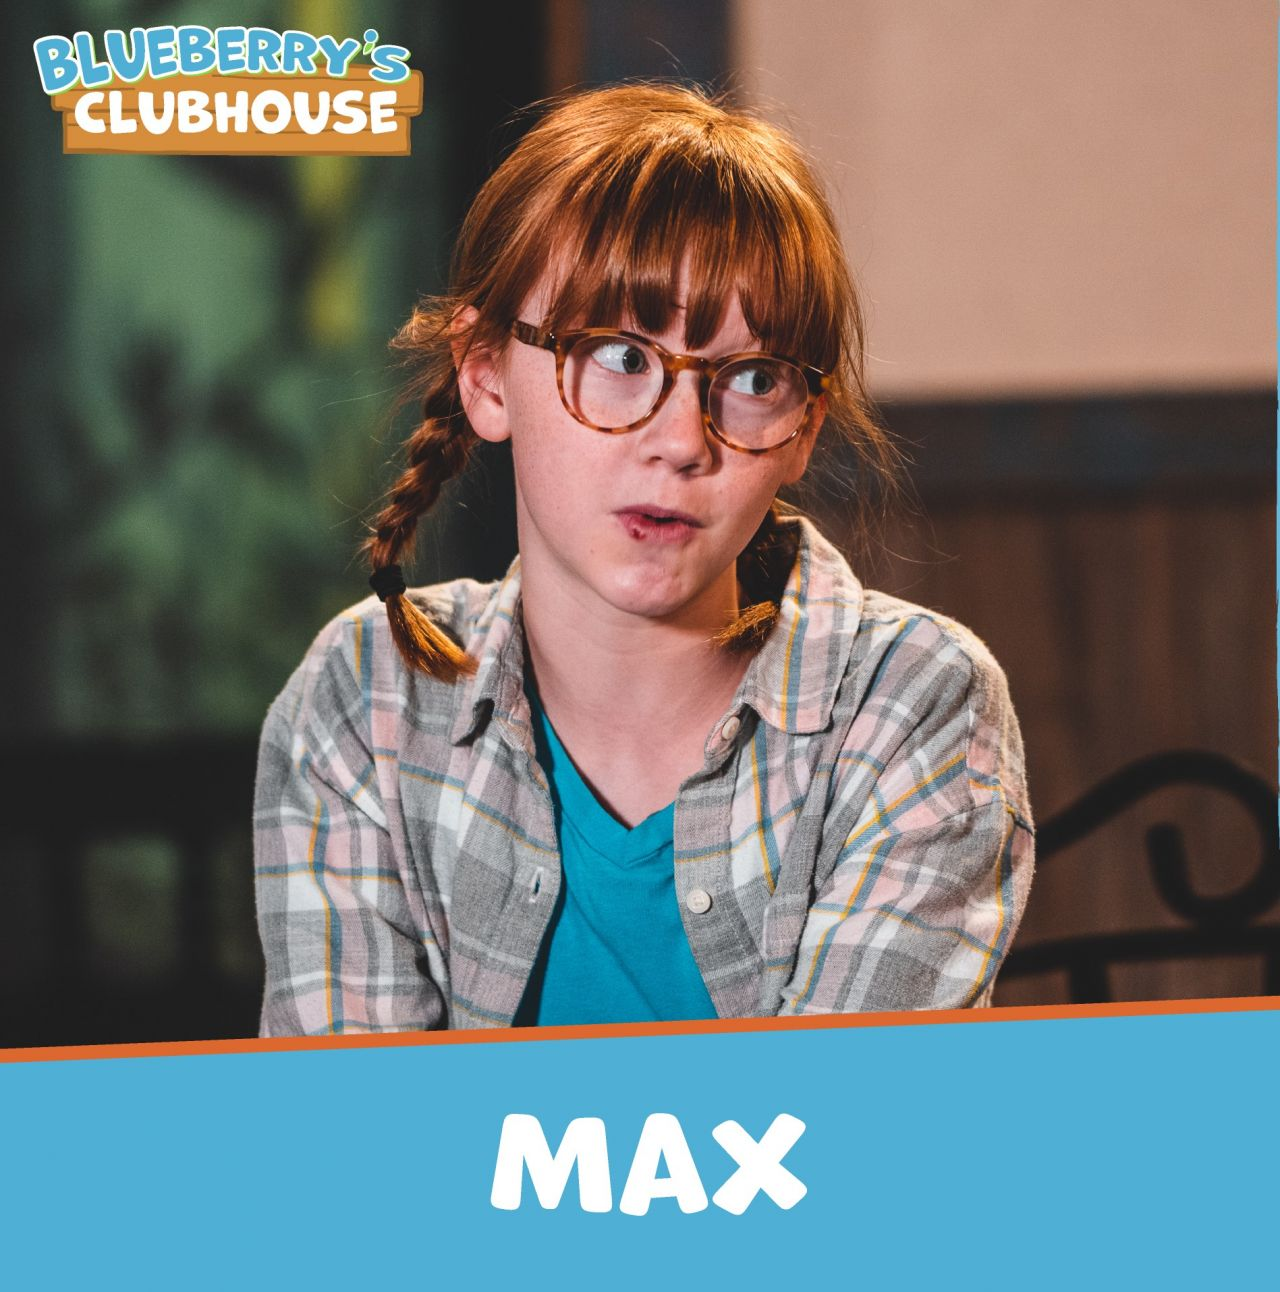 Max, with hair in pigtails and wearing a teal t-shirt under a grey, pink, blue, white and yellow plaid, long-sleeved button-down shirt and tortoiseshell glasses, casts a surprised glance to someone offscreen